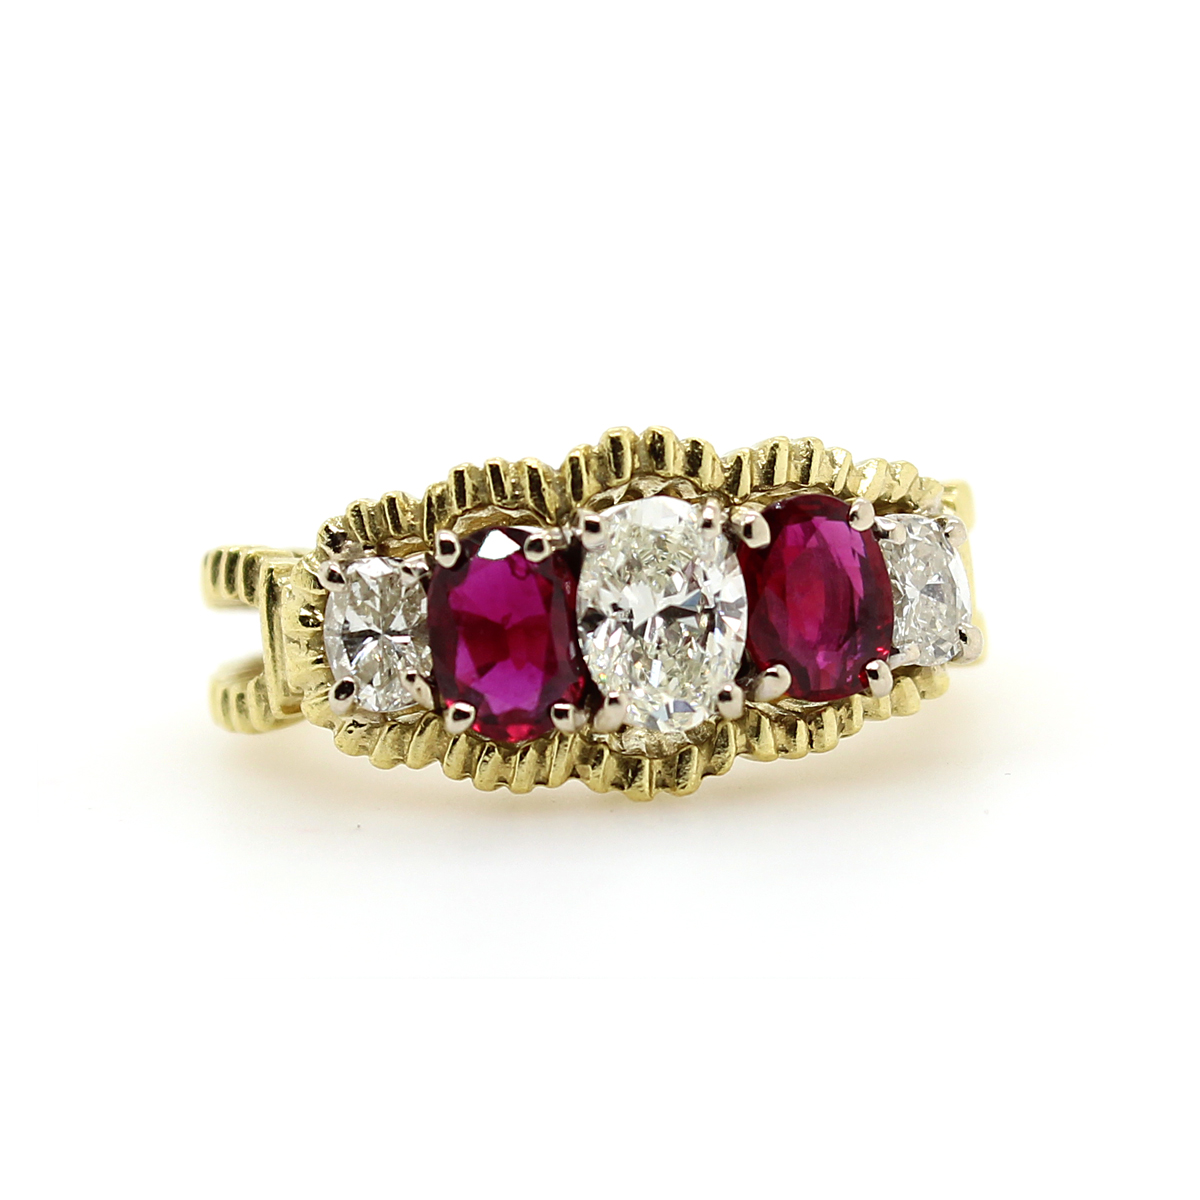 Vintage 18 Karat Yellow Gold Oval Diamond and Ruby Ring